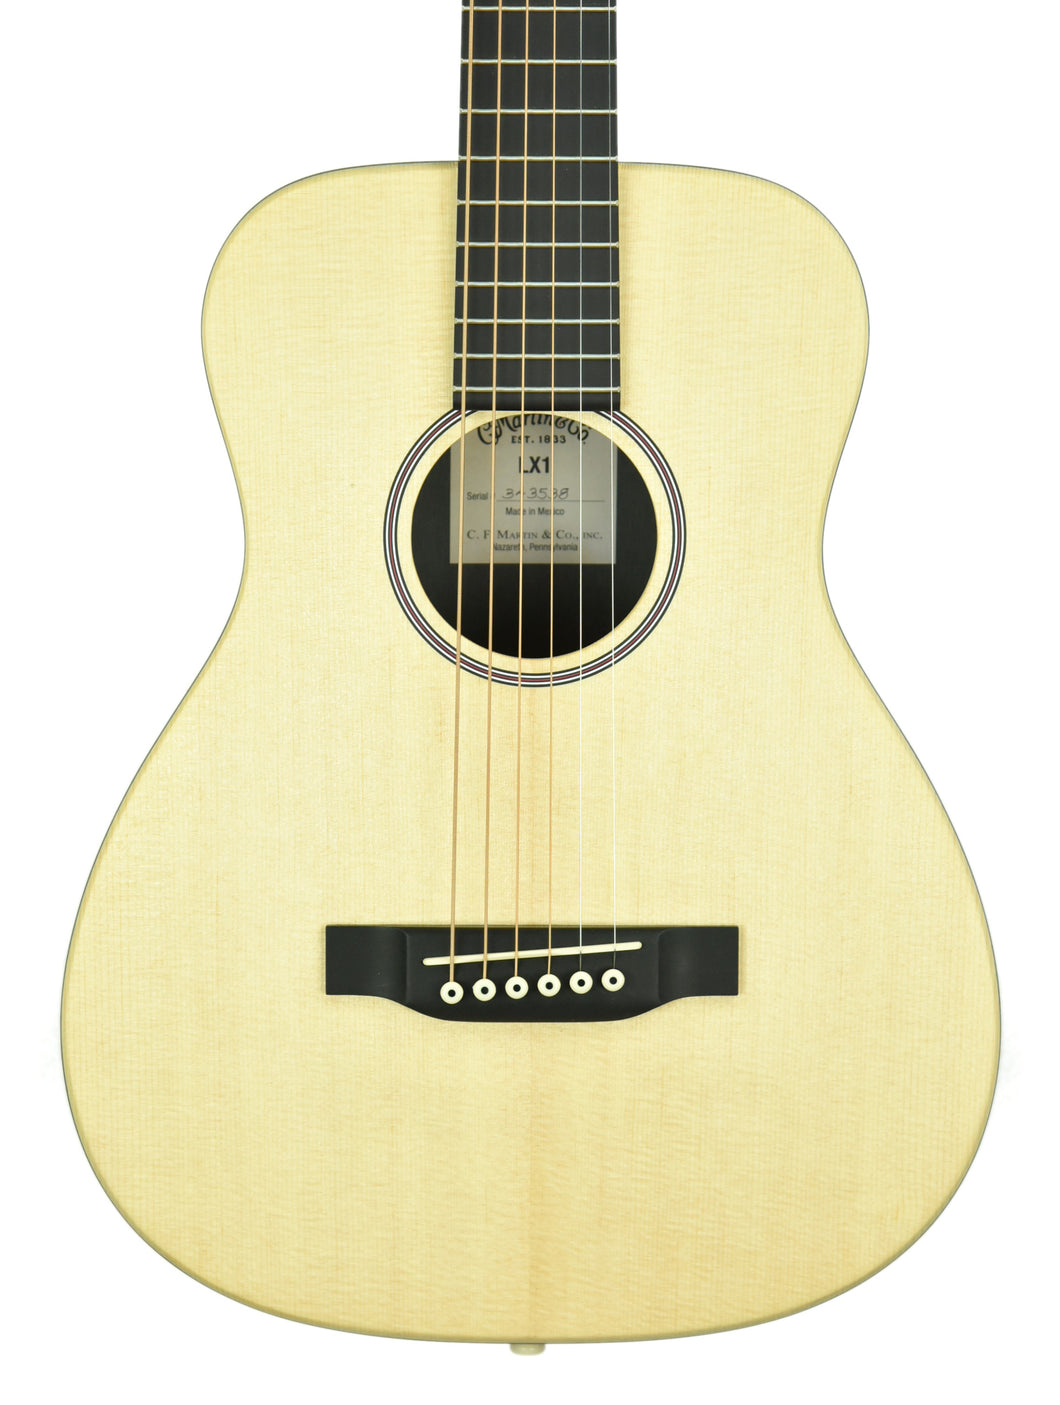 Martin LX1 Little Martin Acoustic Guitar 343473